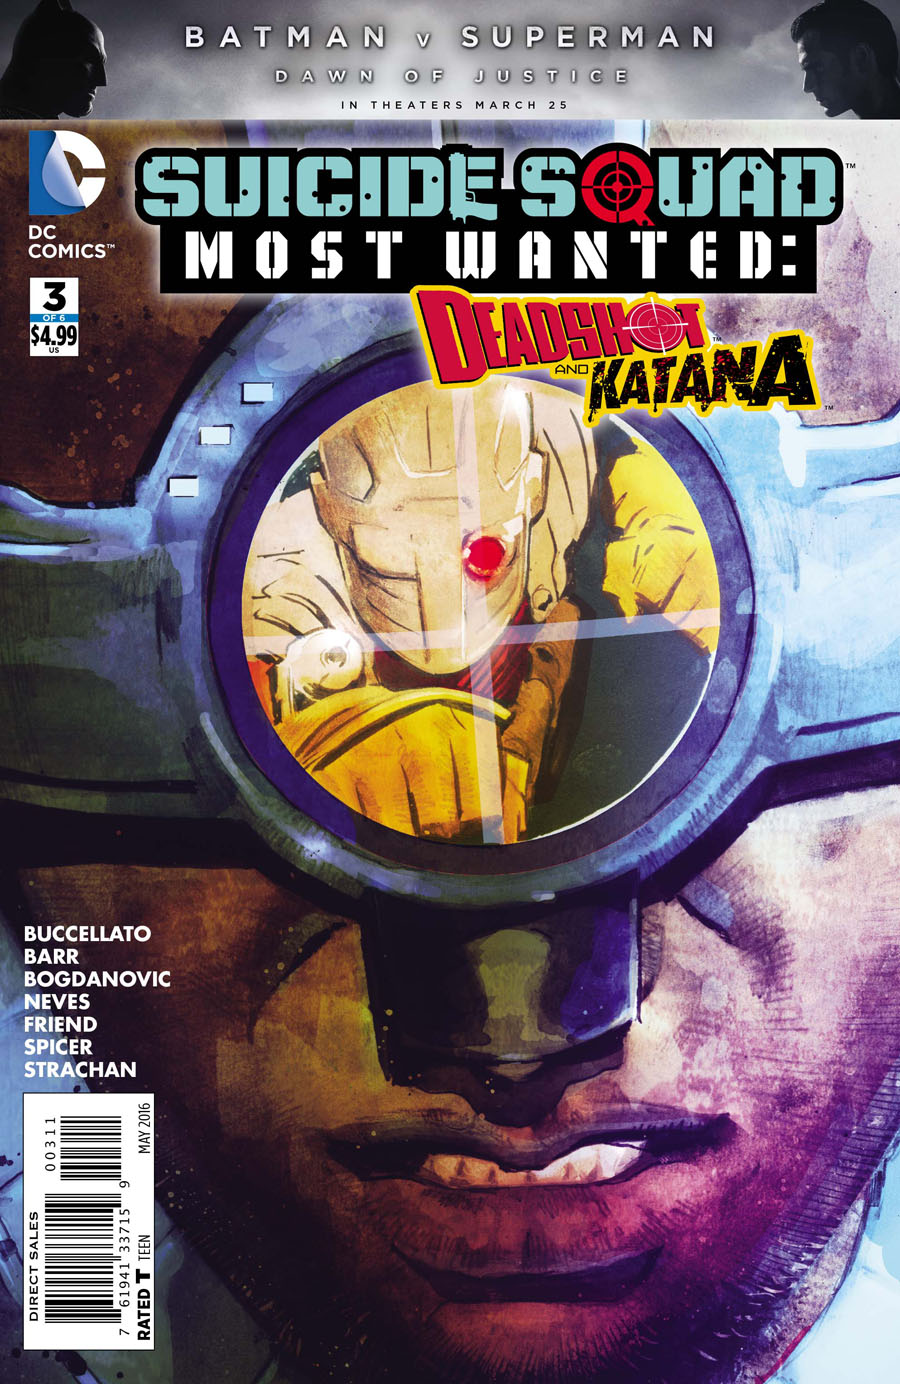 Suicide Squad Most Wanted Deadshot Katana #3